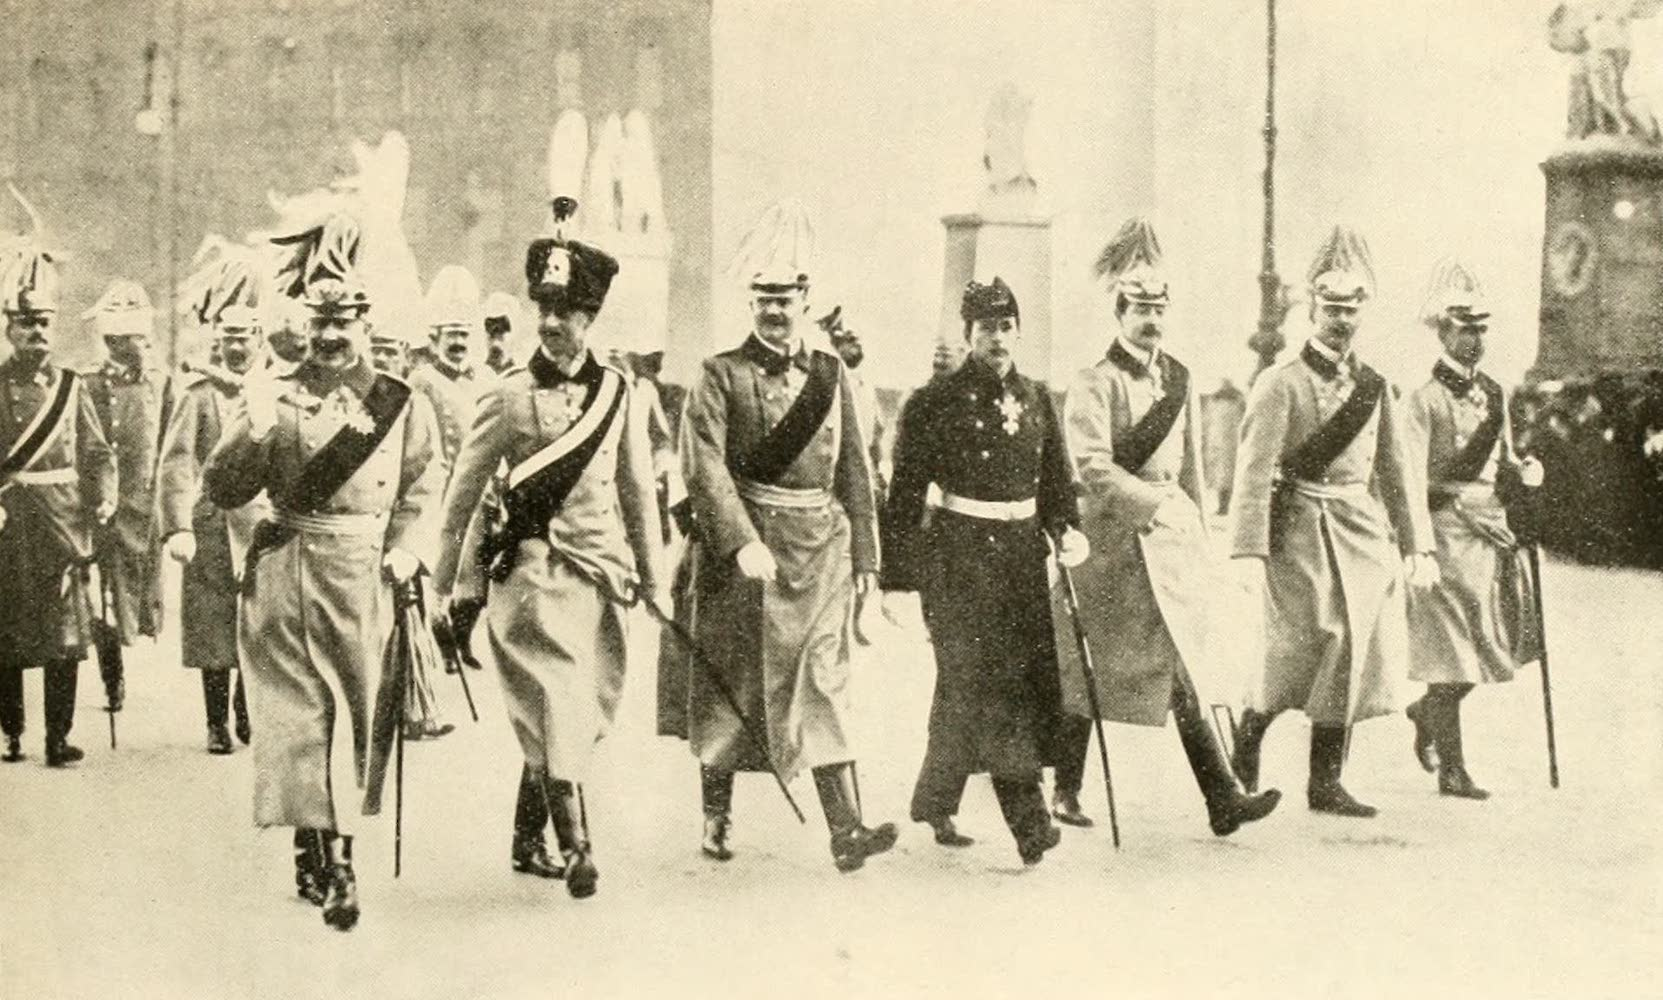 Laird & Lee's World's War Glimpses - German Kaiser and Sons in Military Parade in Berlin (1914)